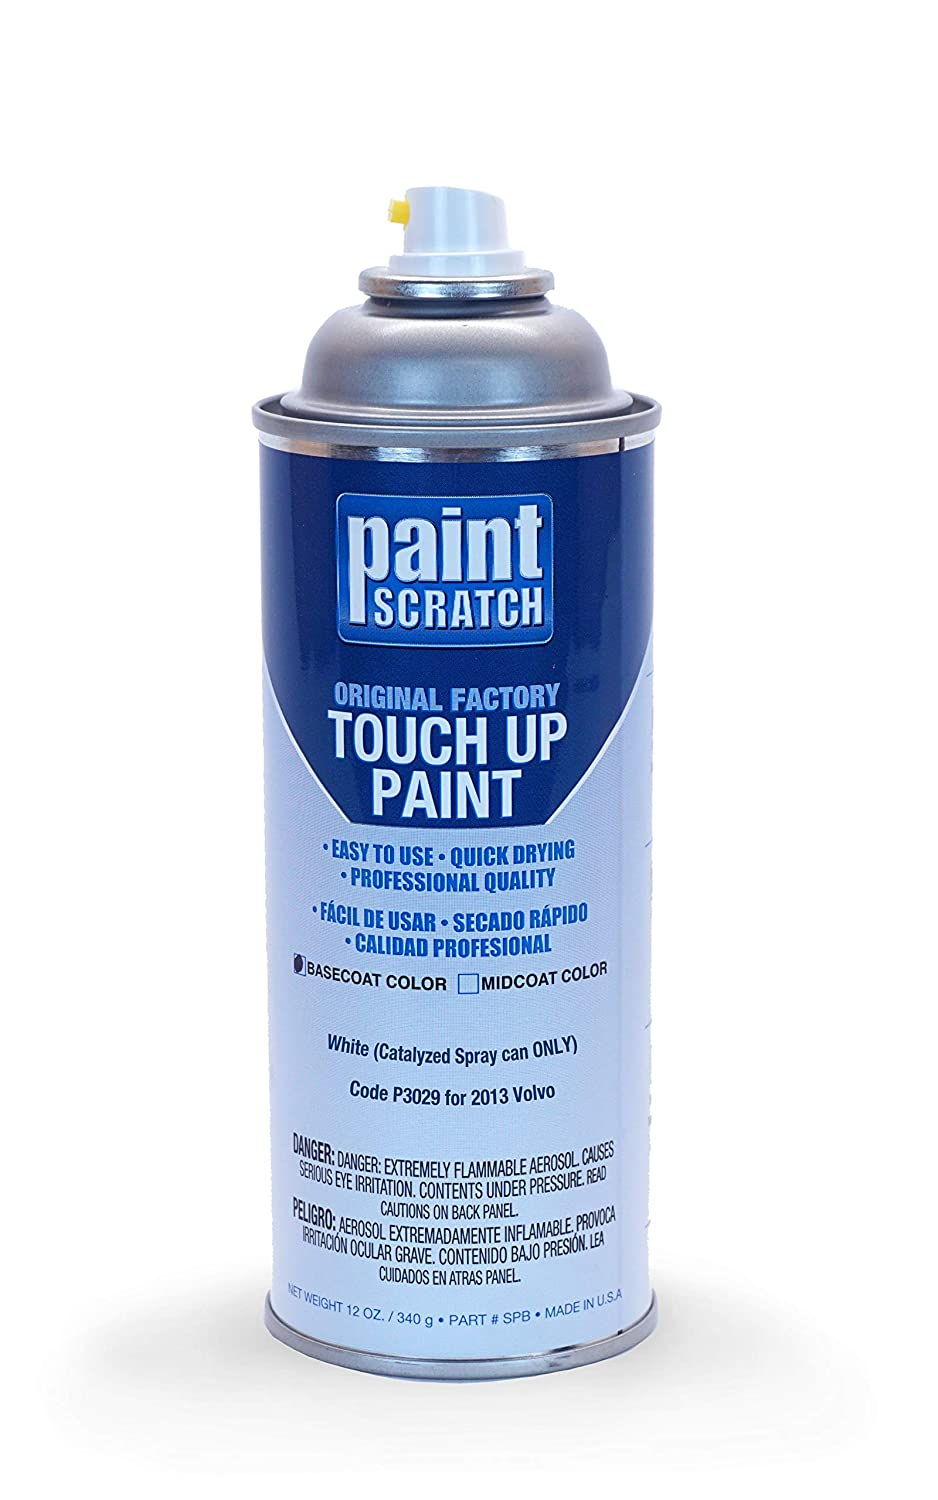 Amazon.com: PAINTSCRATCH White (Catalyzed Spray Can Only) P3029 for 2013 Volvo Truck - Touch Up Paint Spray Can Kit - Original Factory OEM Automotive Paint ...